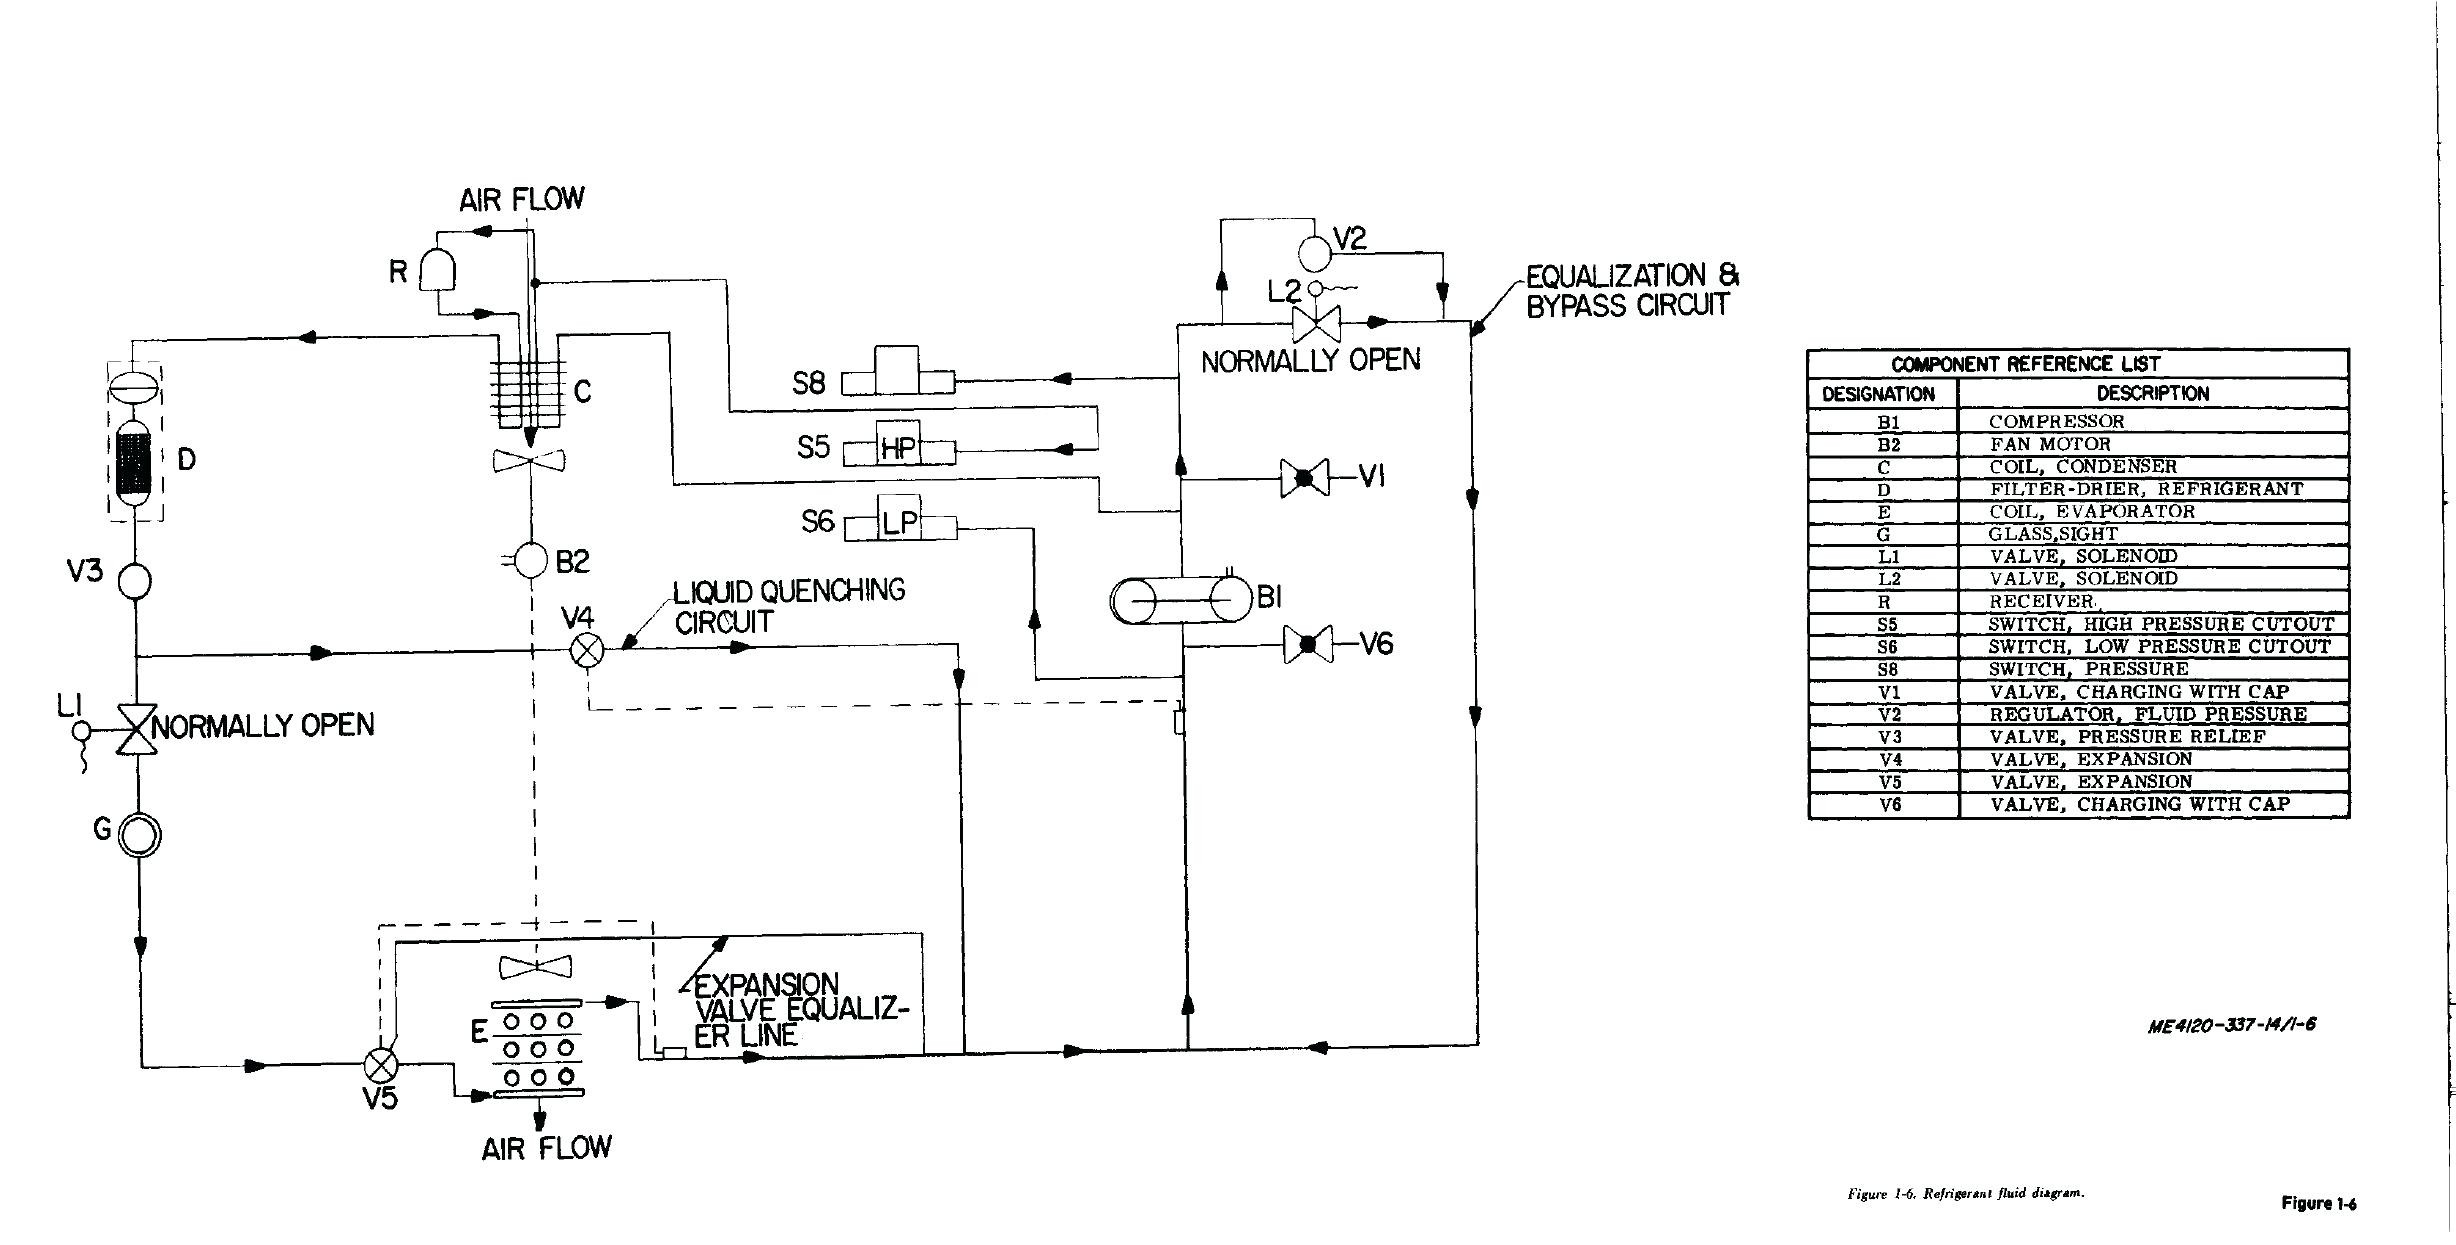 Auto Air Condition System Diagram Shocking Wiring Carrier Diagrams Pdf Split Conditioner Central White Simple Of